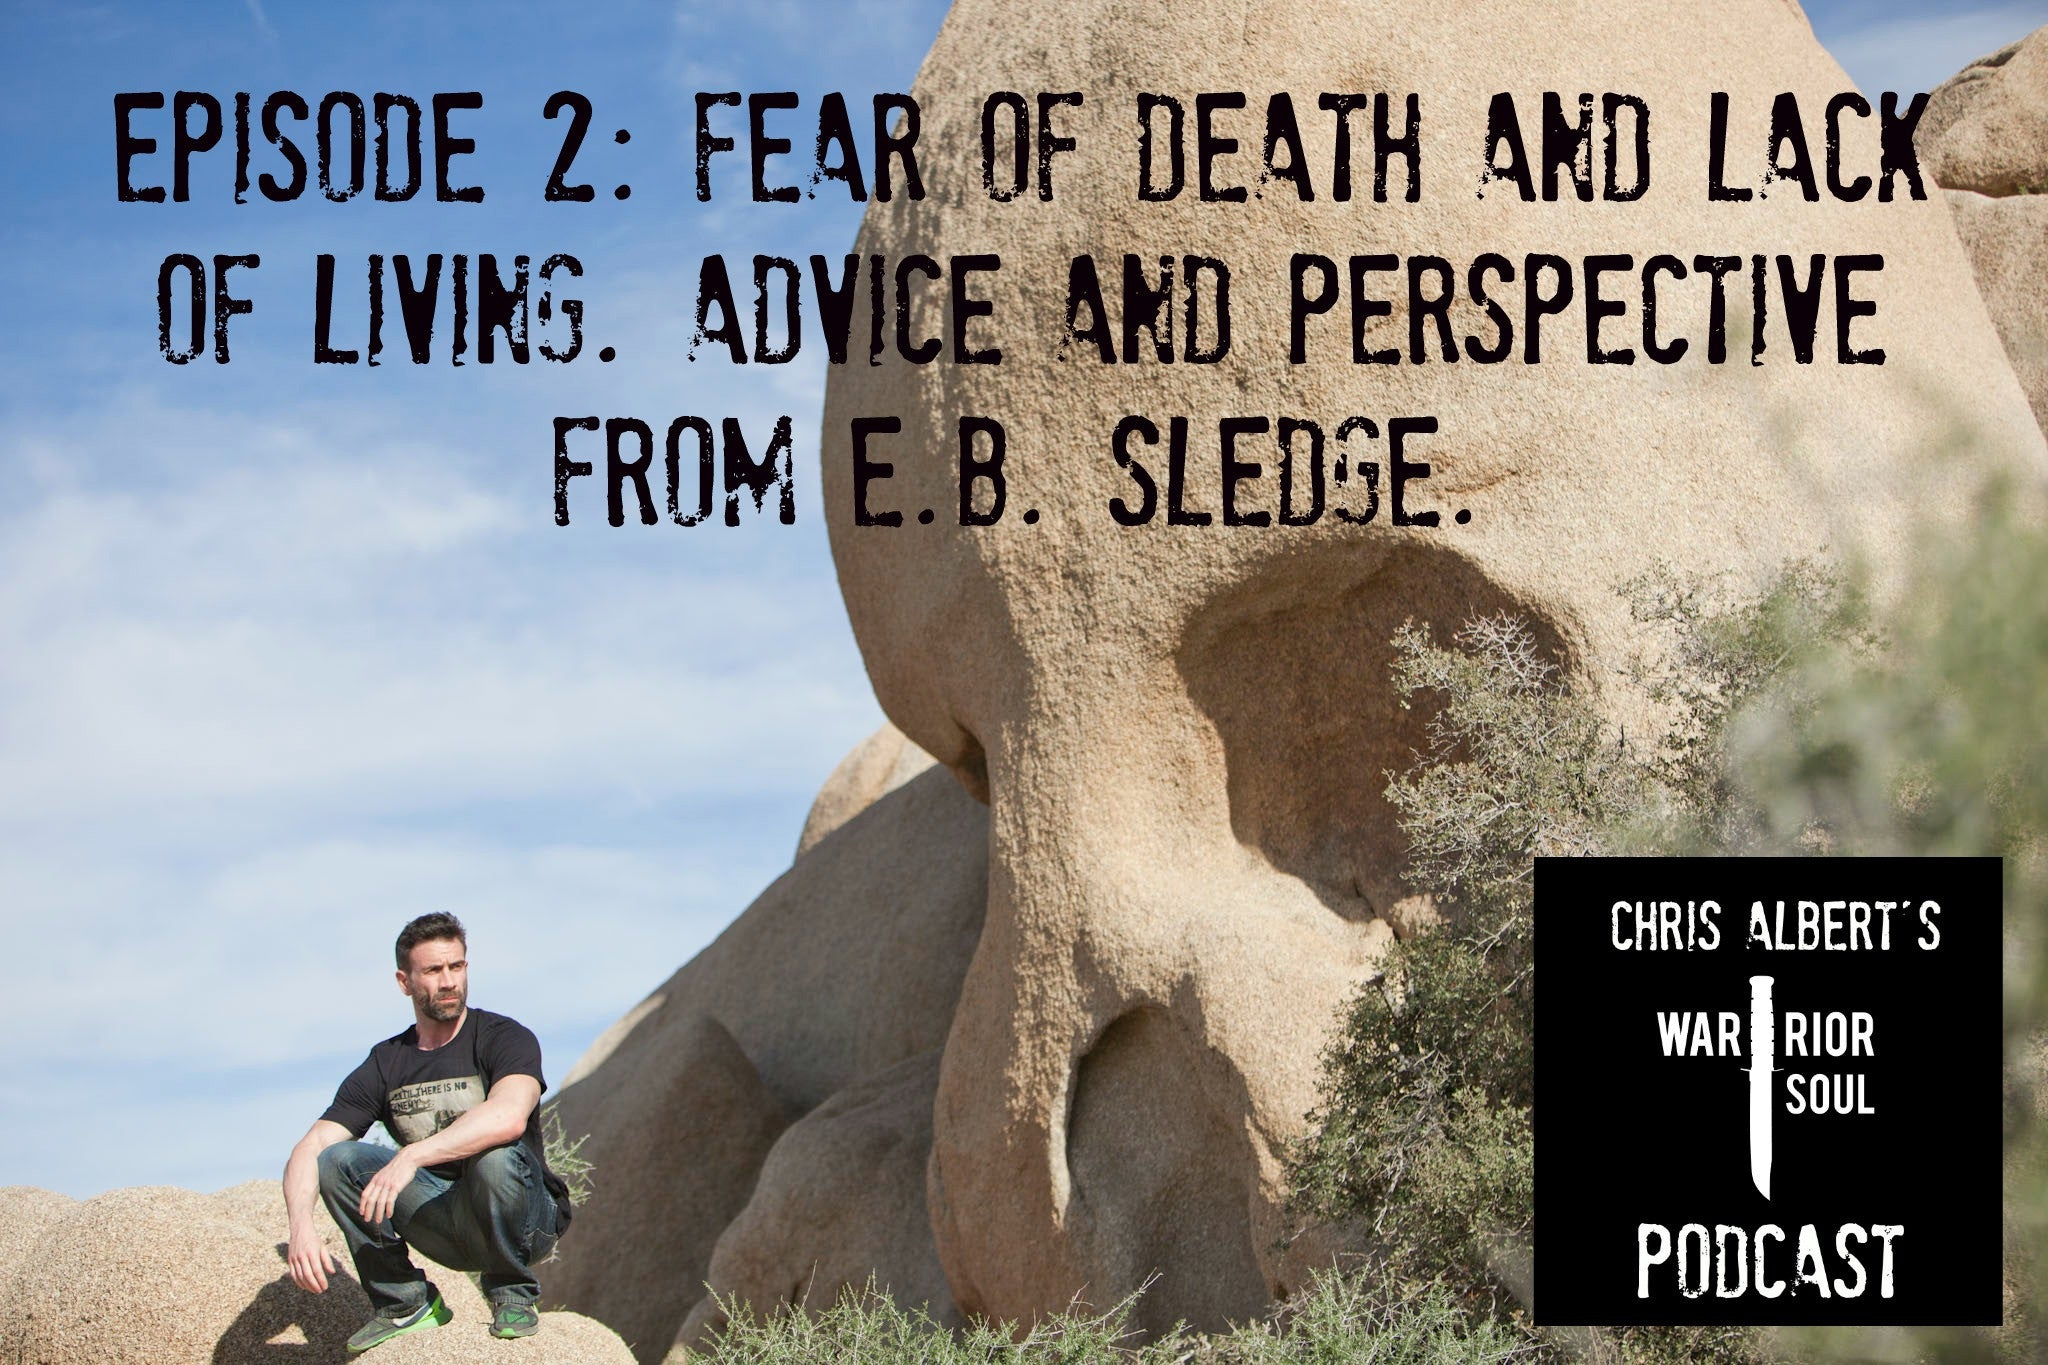 Episode 2: Fear of Death and Lack of Living. Advice and perspective from E.B. Sledge.